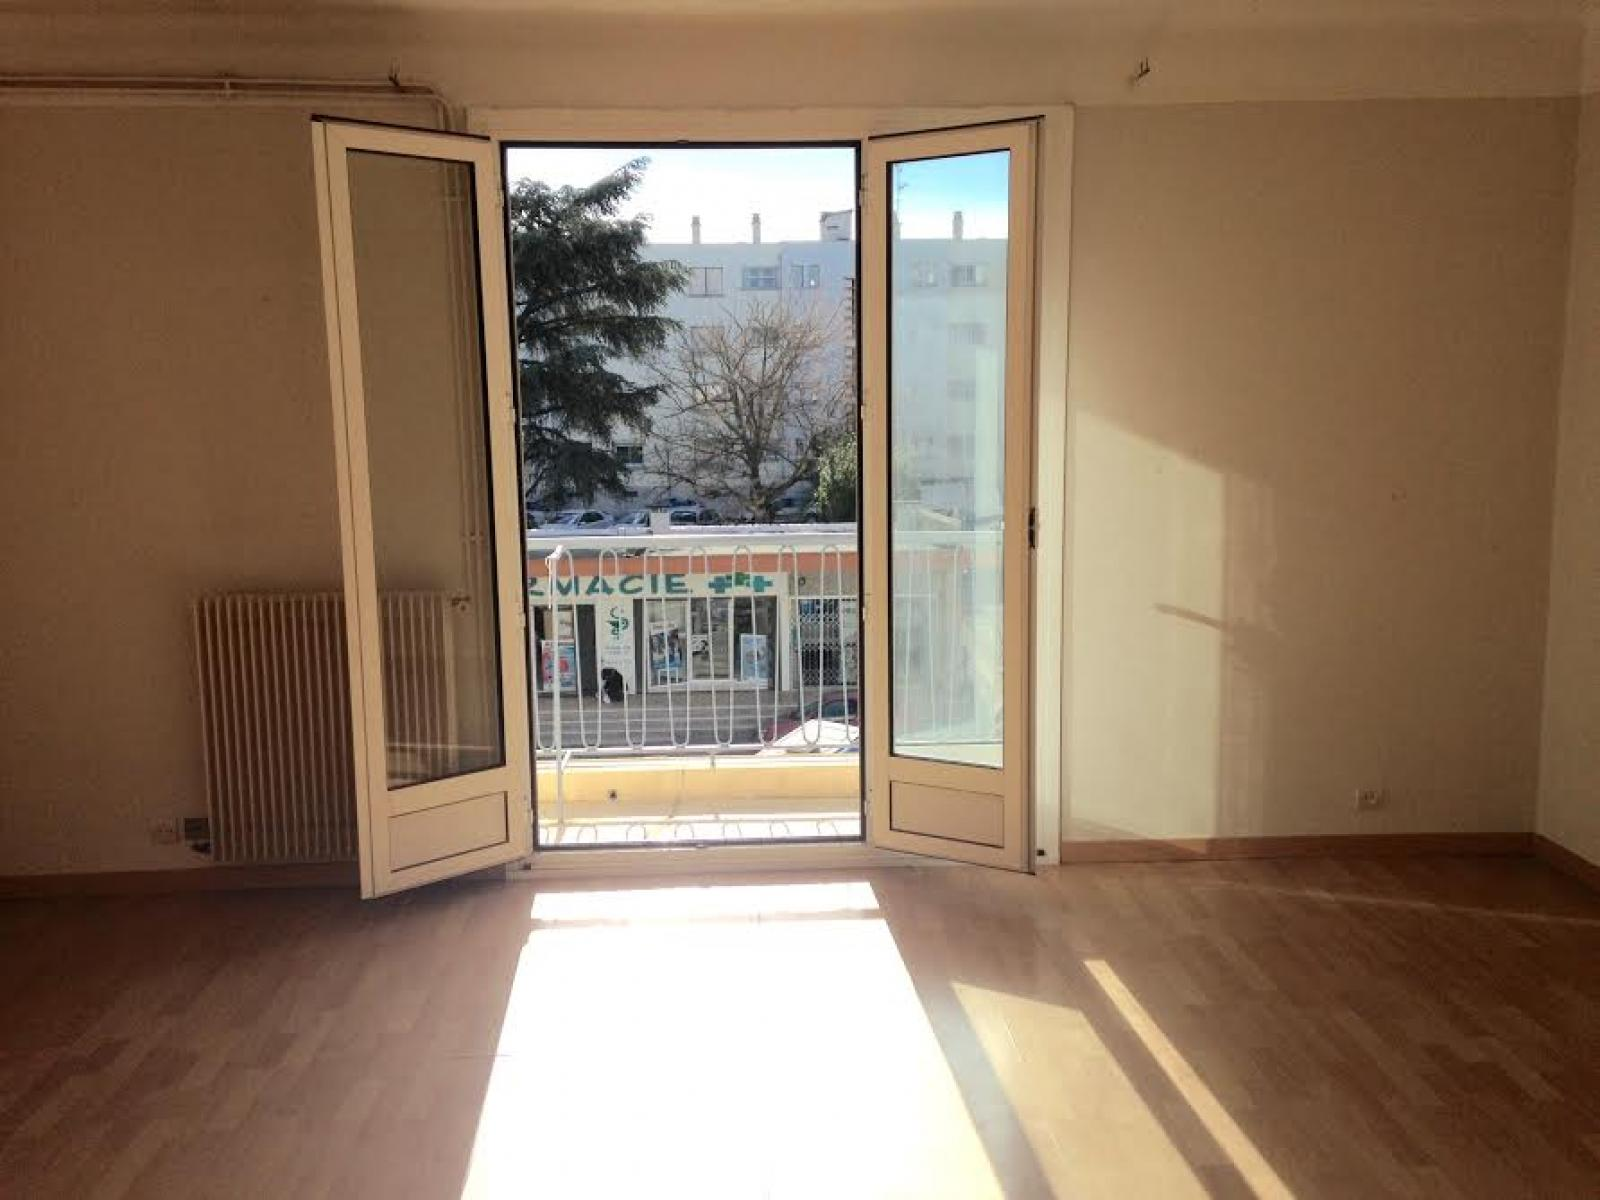 Annonce location appartement montpellier 34000 58 m for Annonce location appartement